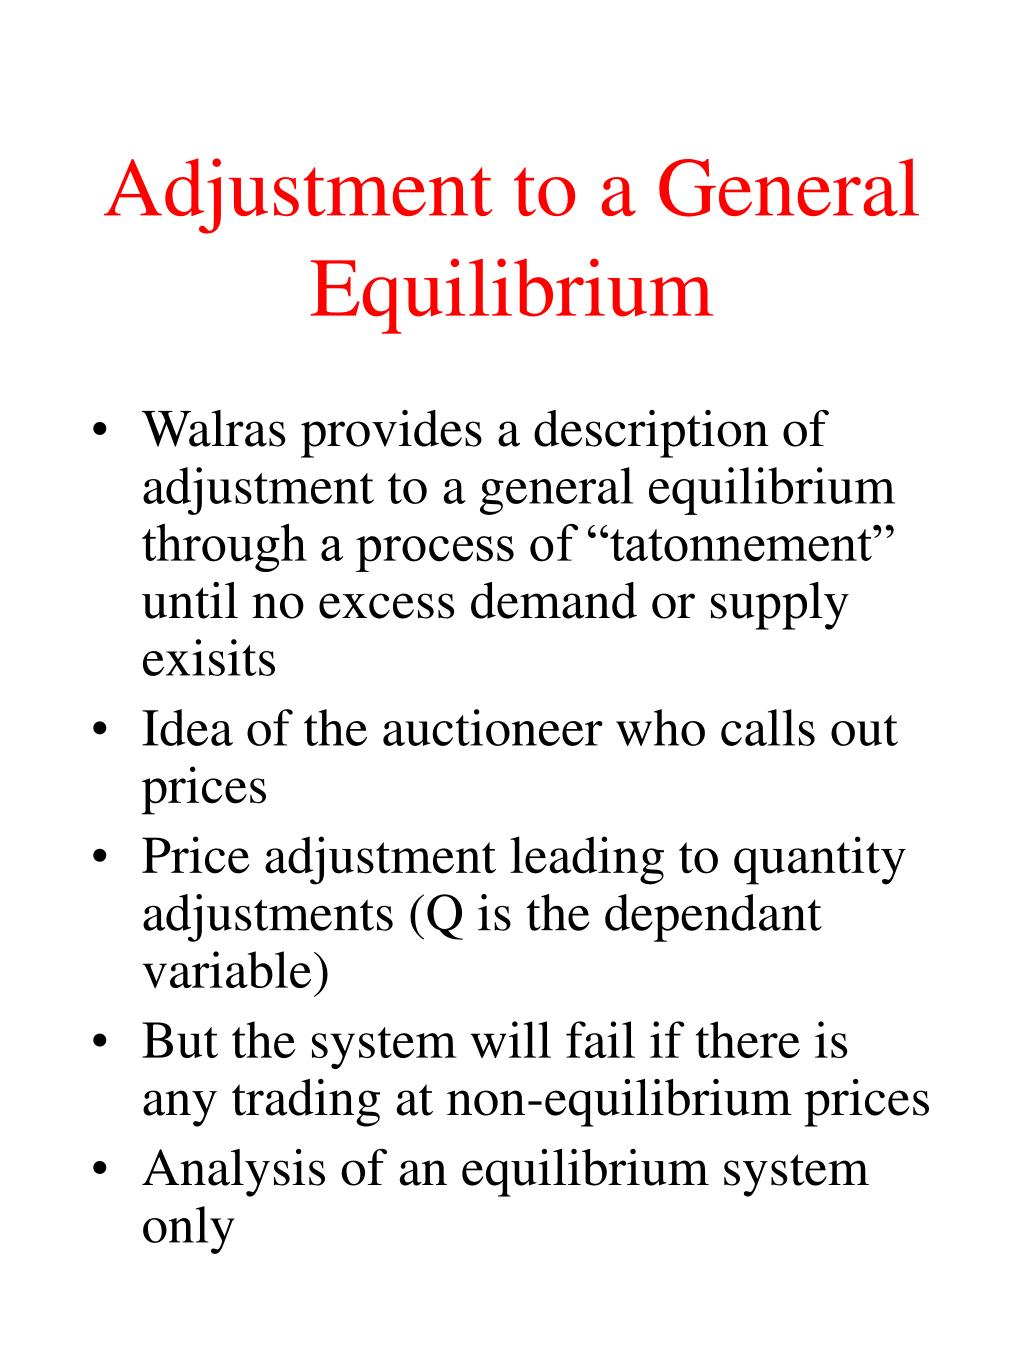 Adjustment to a General Equilibrium